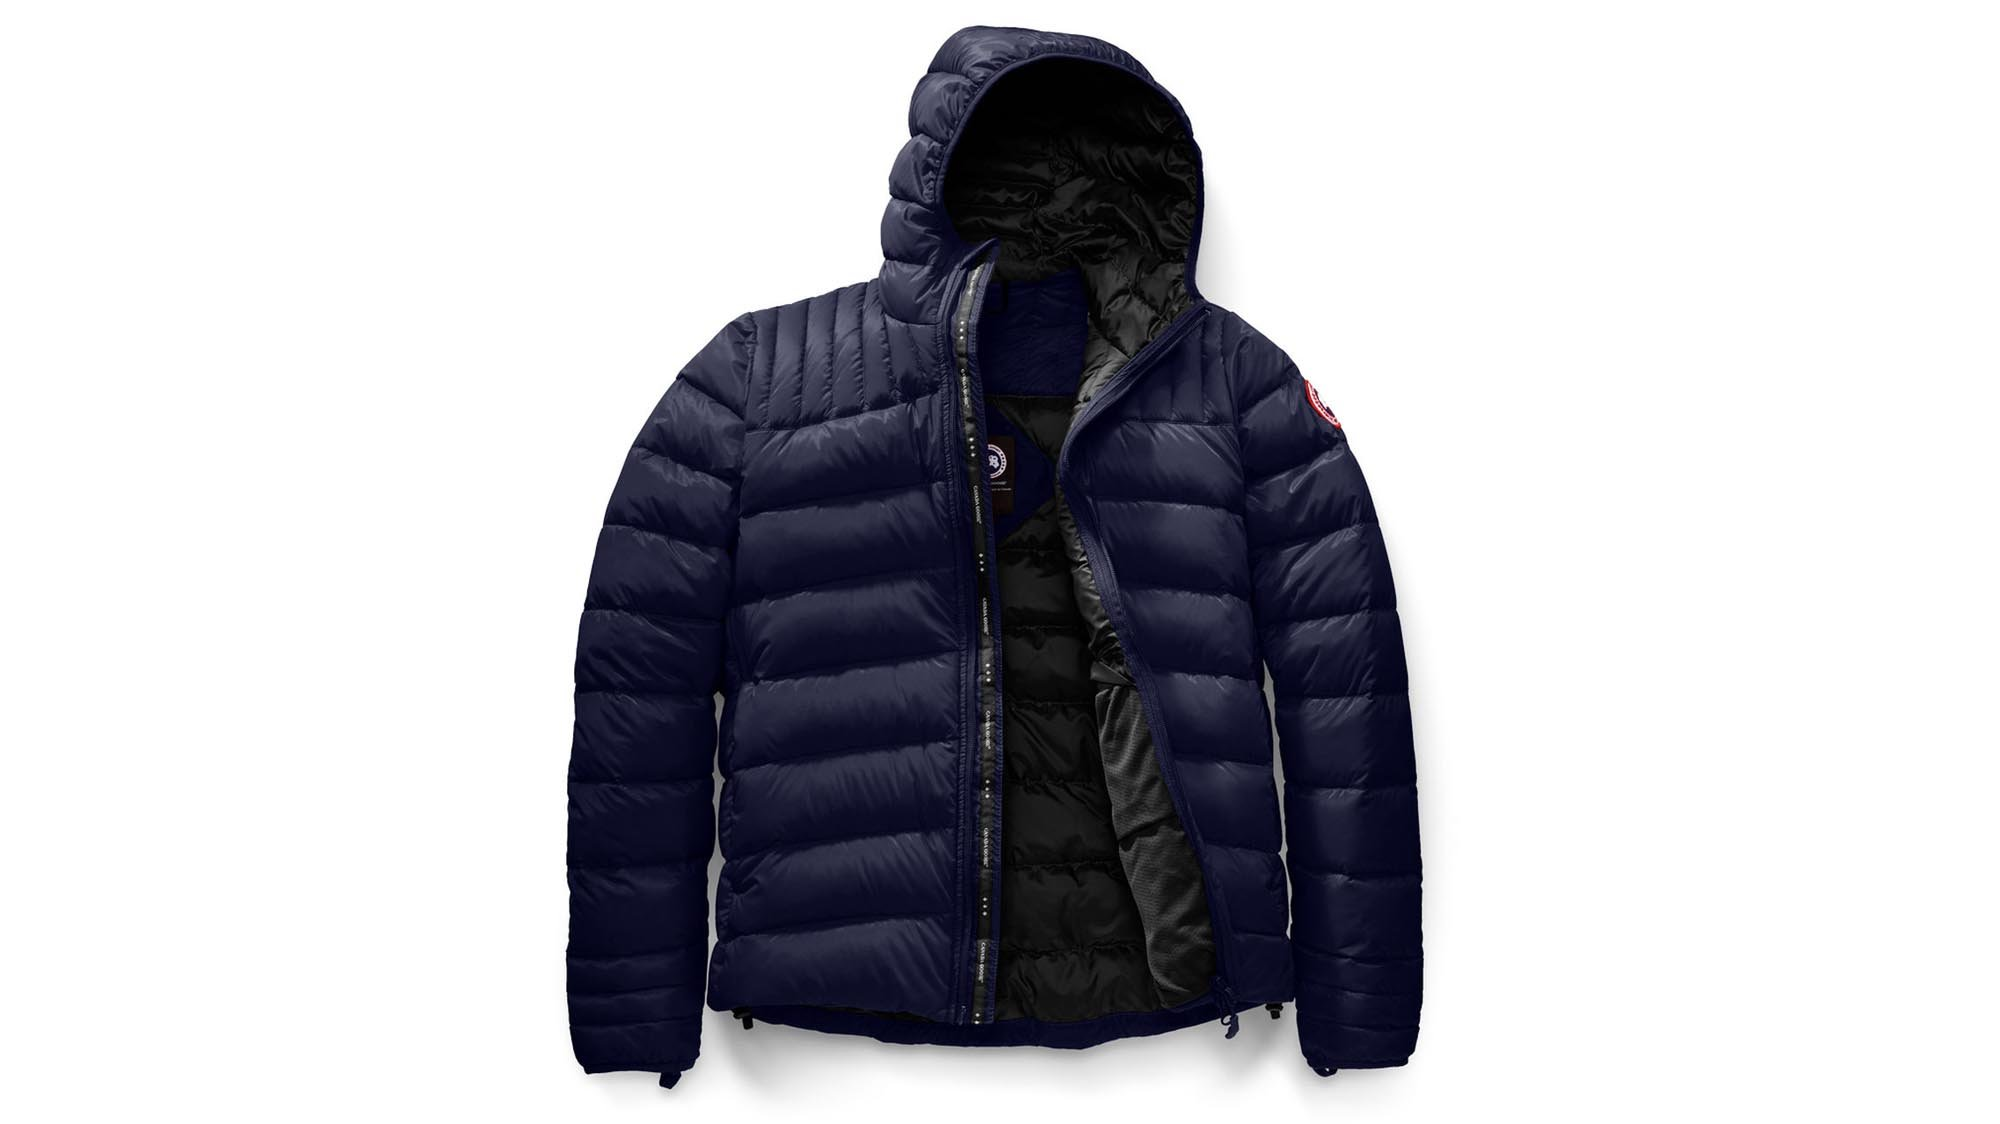 eaf1a23e45 Eye-wateringly expensive it may be, but the Brookvale is a seriously plush  and high-performing coat. If you can afford to spend serious money on a down  ...